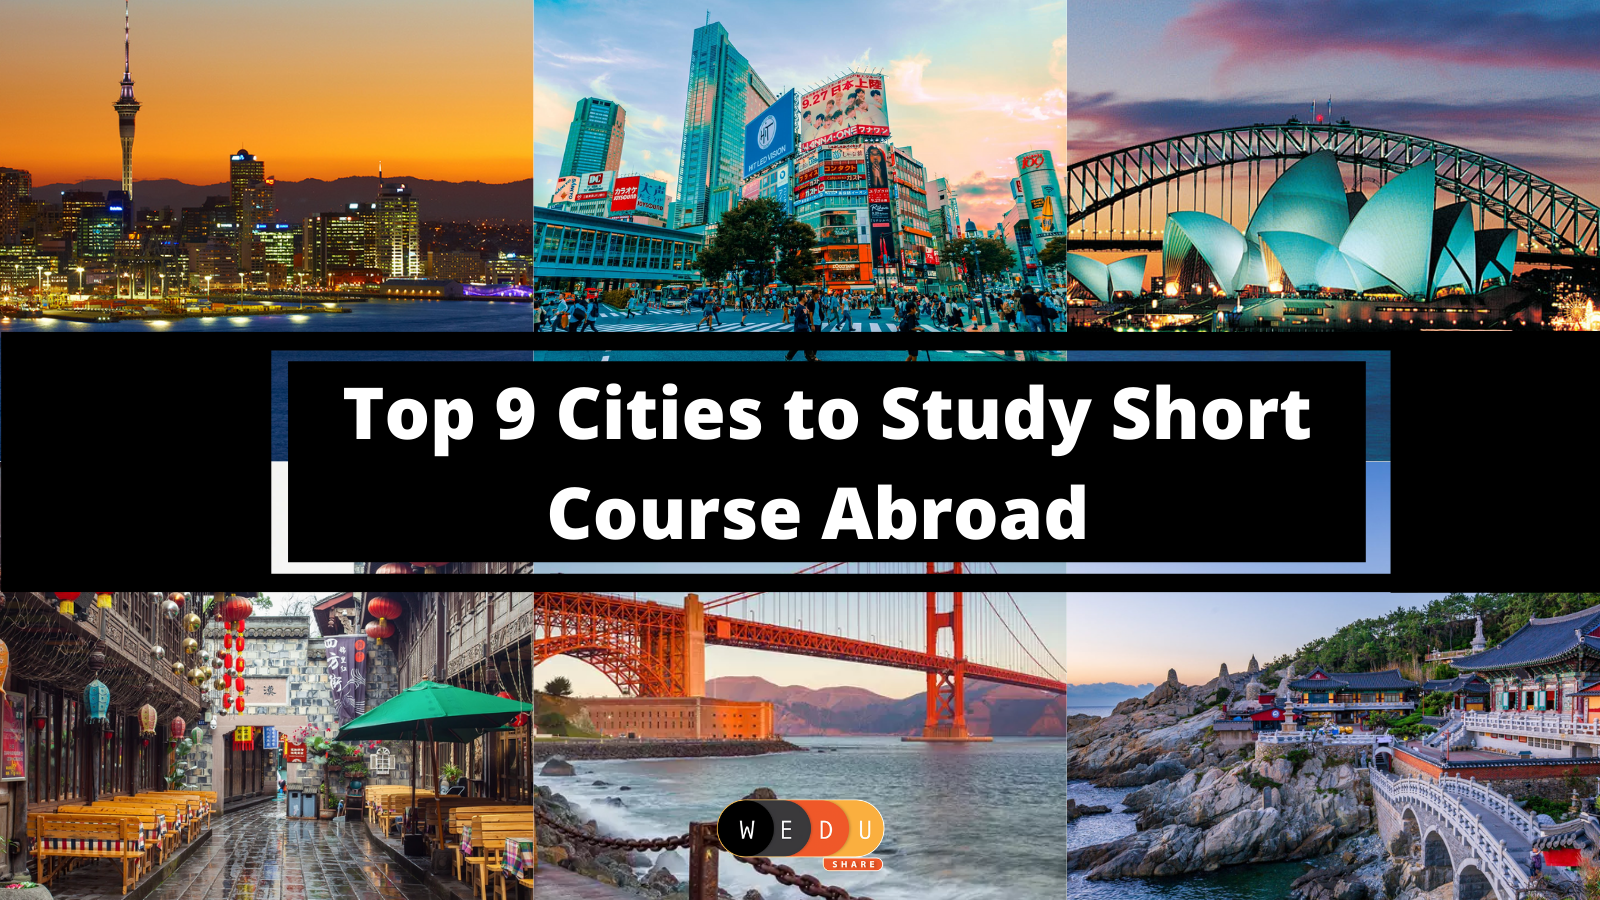 Top 9 Cities to Study Short Course Abroad